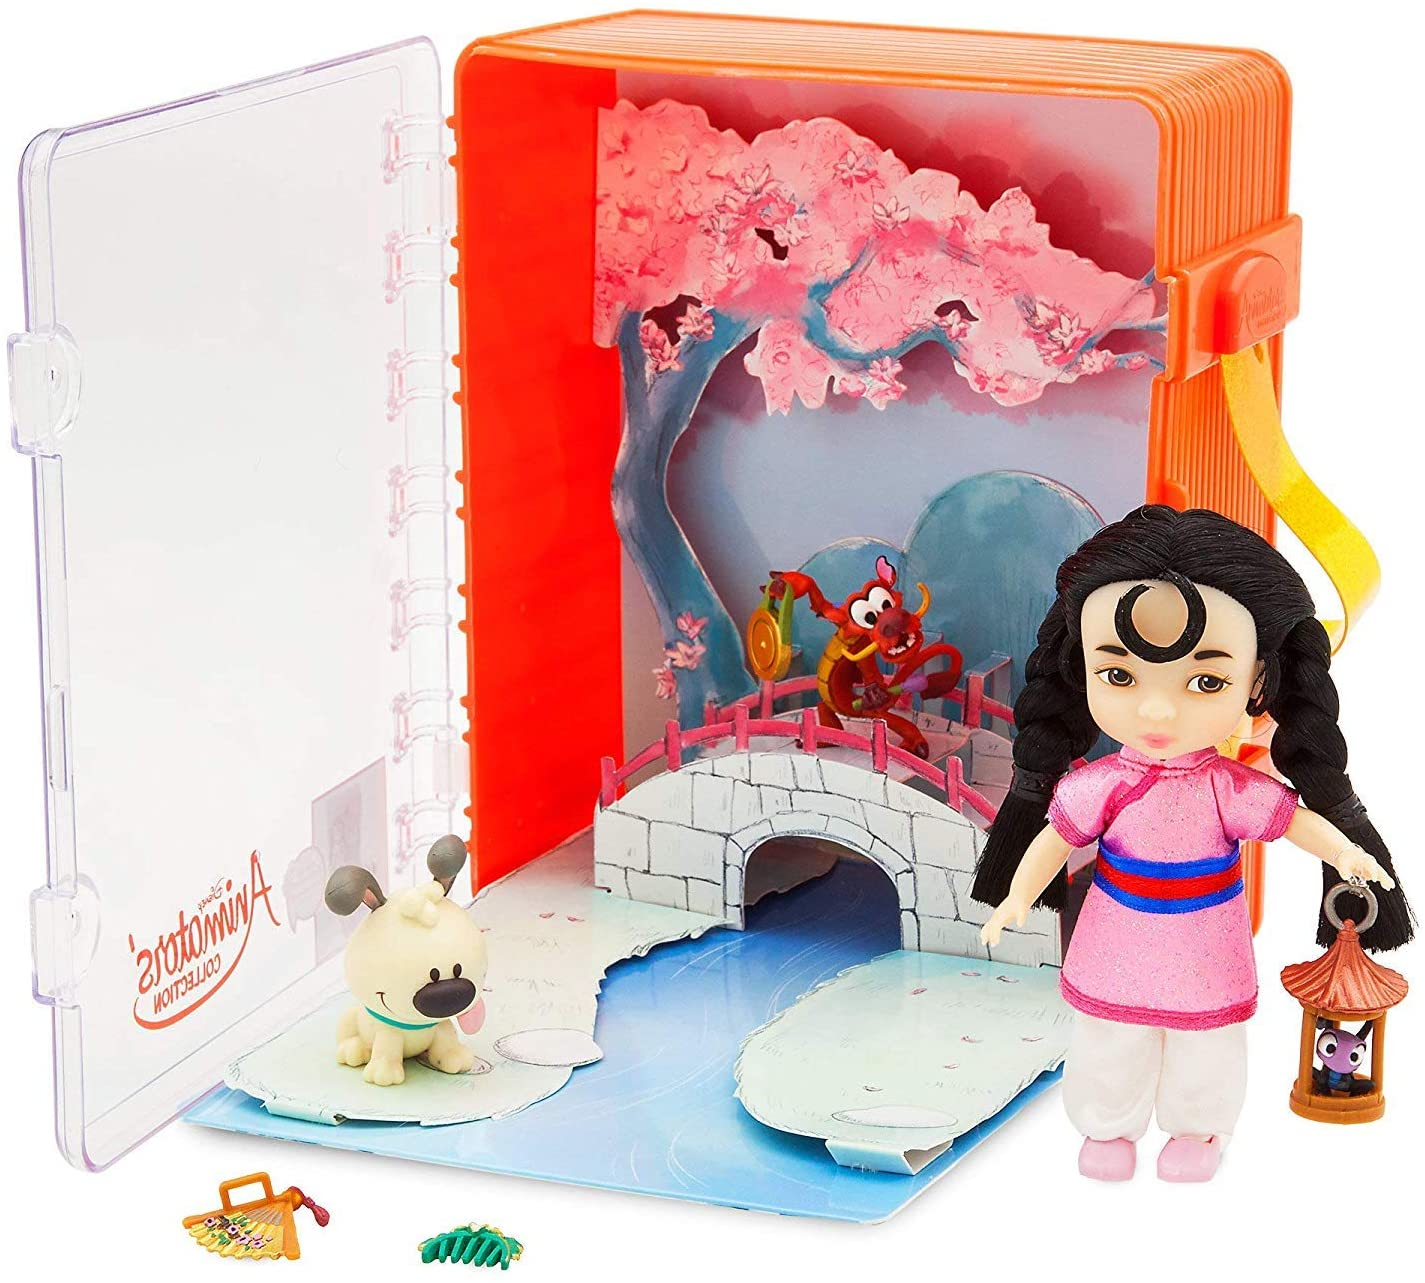 Disney Animators' Collection - Mulan (Includes Mushu, CRI-Kee, Little Brother and Accessories)